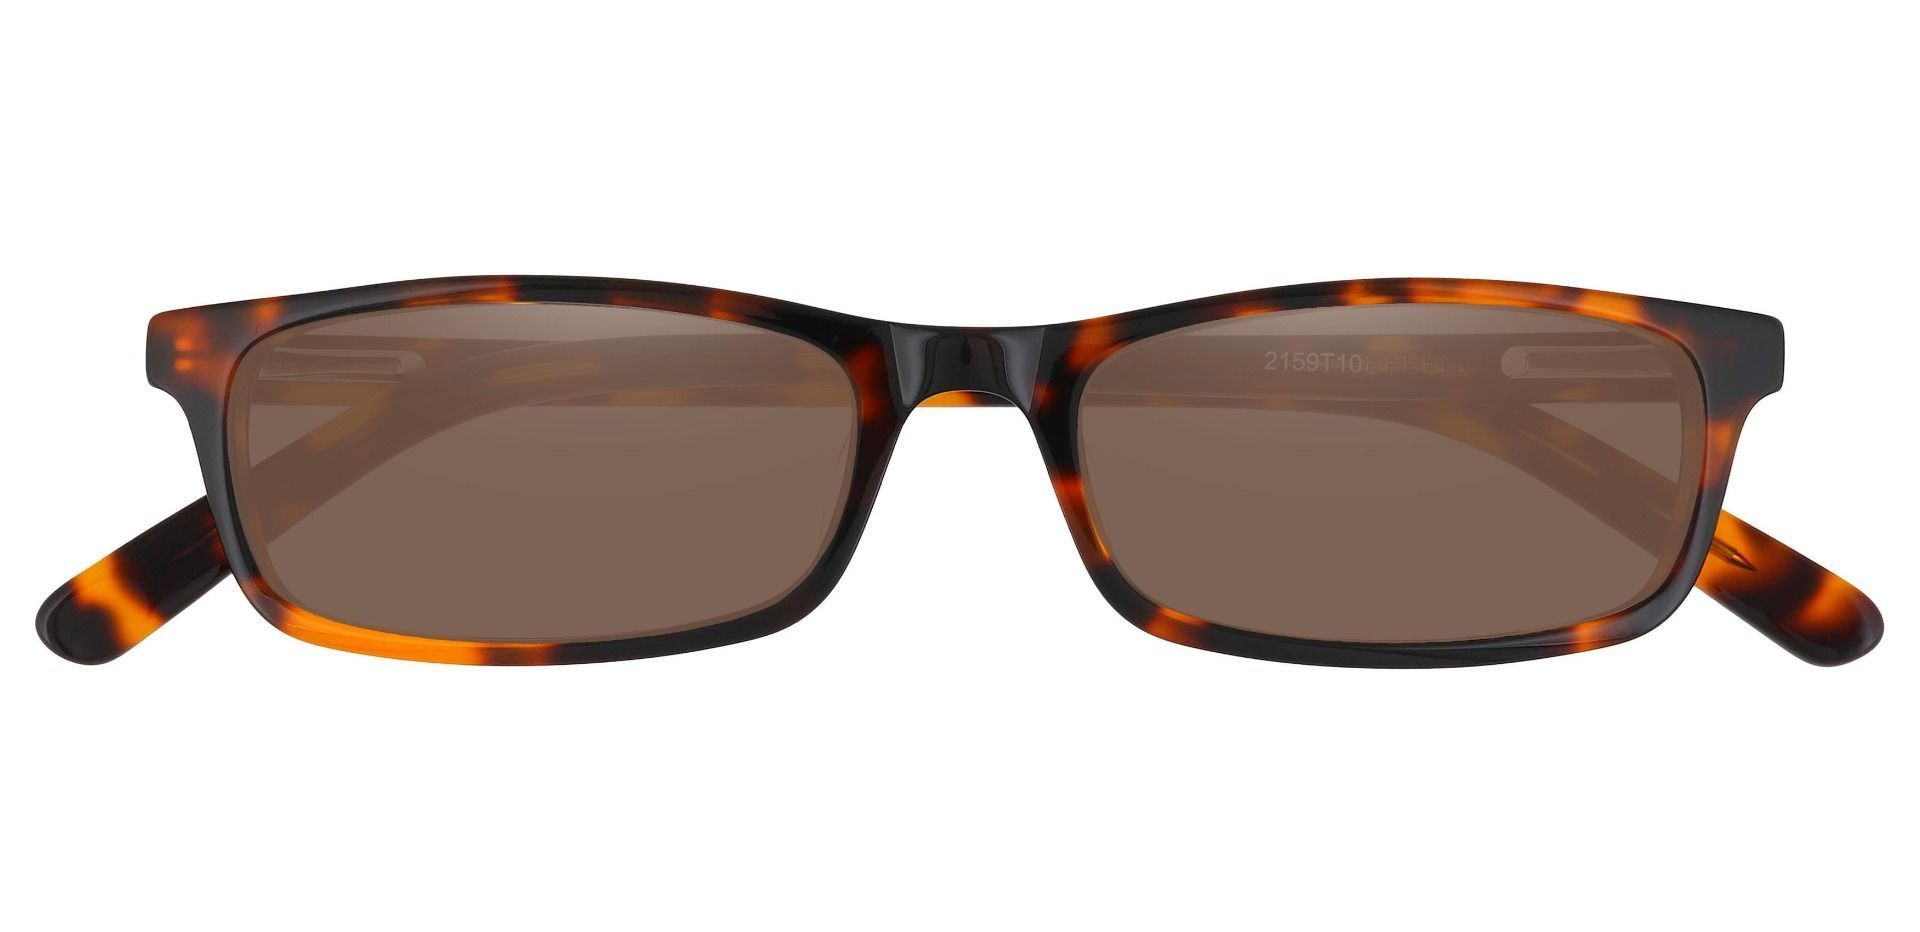 Palisades Rectangle Non-Rx Sunglasses - Tortoise Frame With Brown Lenses